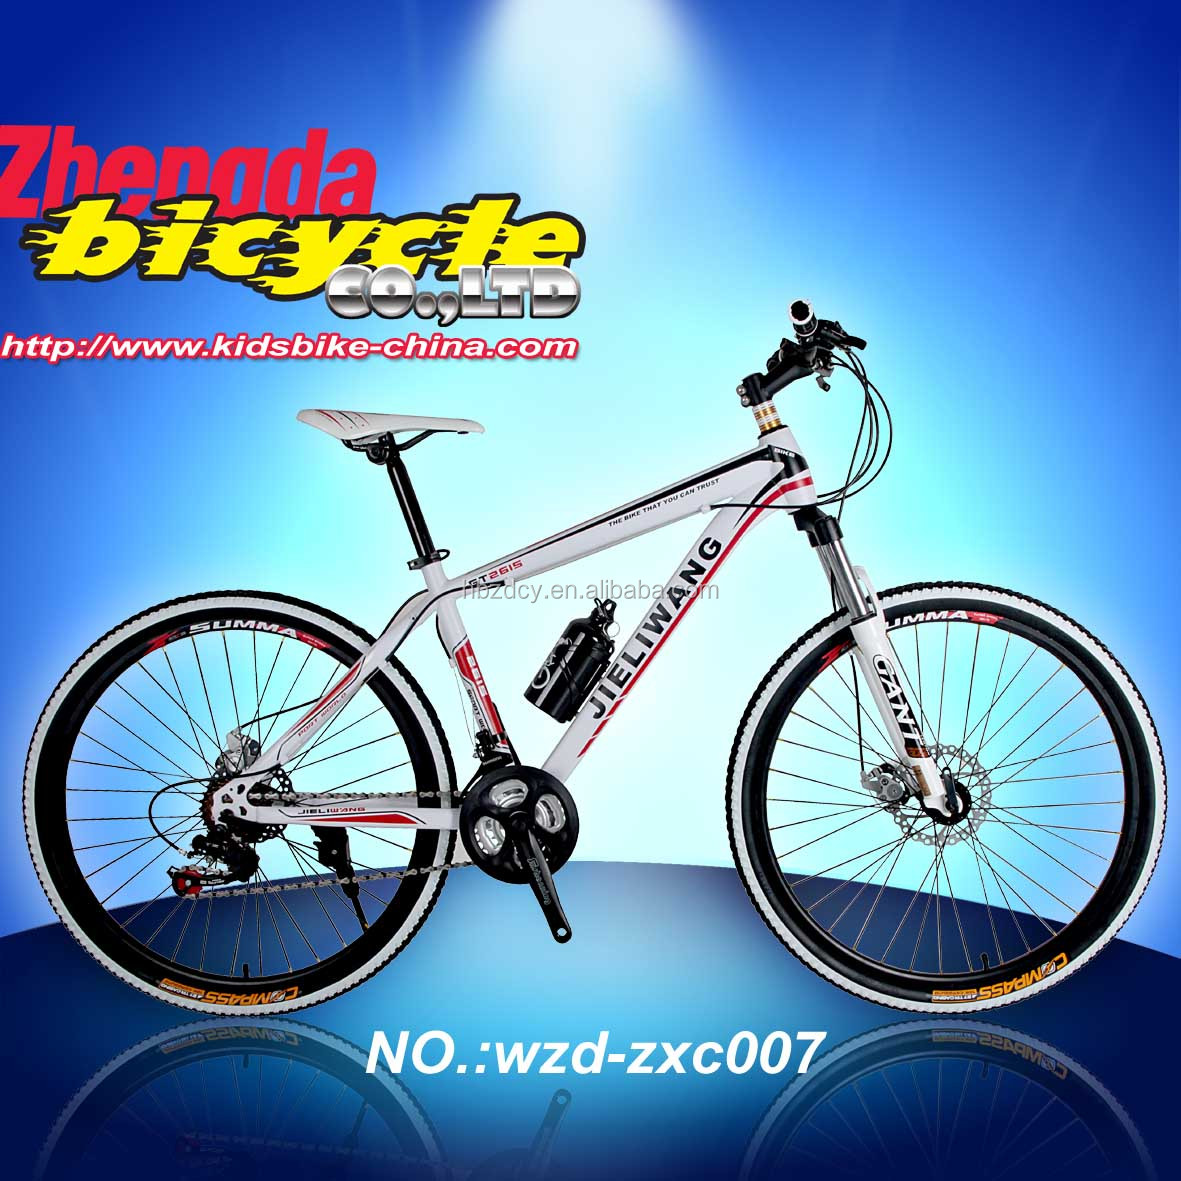 China <strong>bicycle</strong> factory manufacturing full suspension mountain bike bicicletas